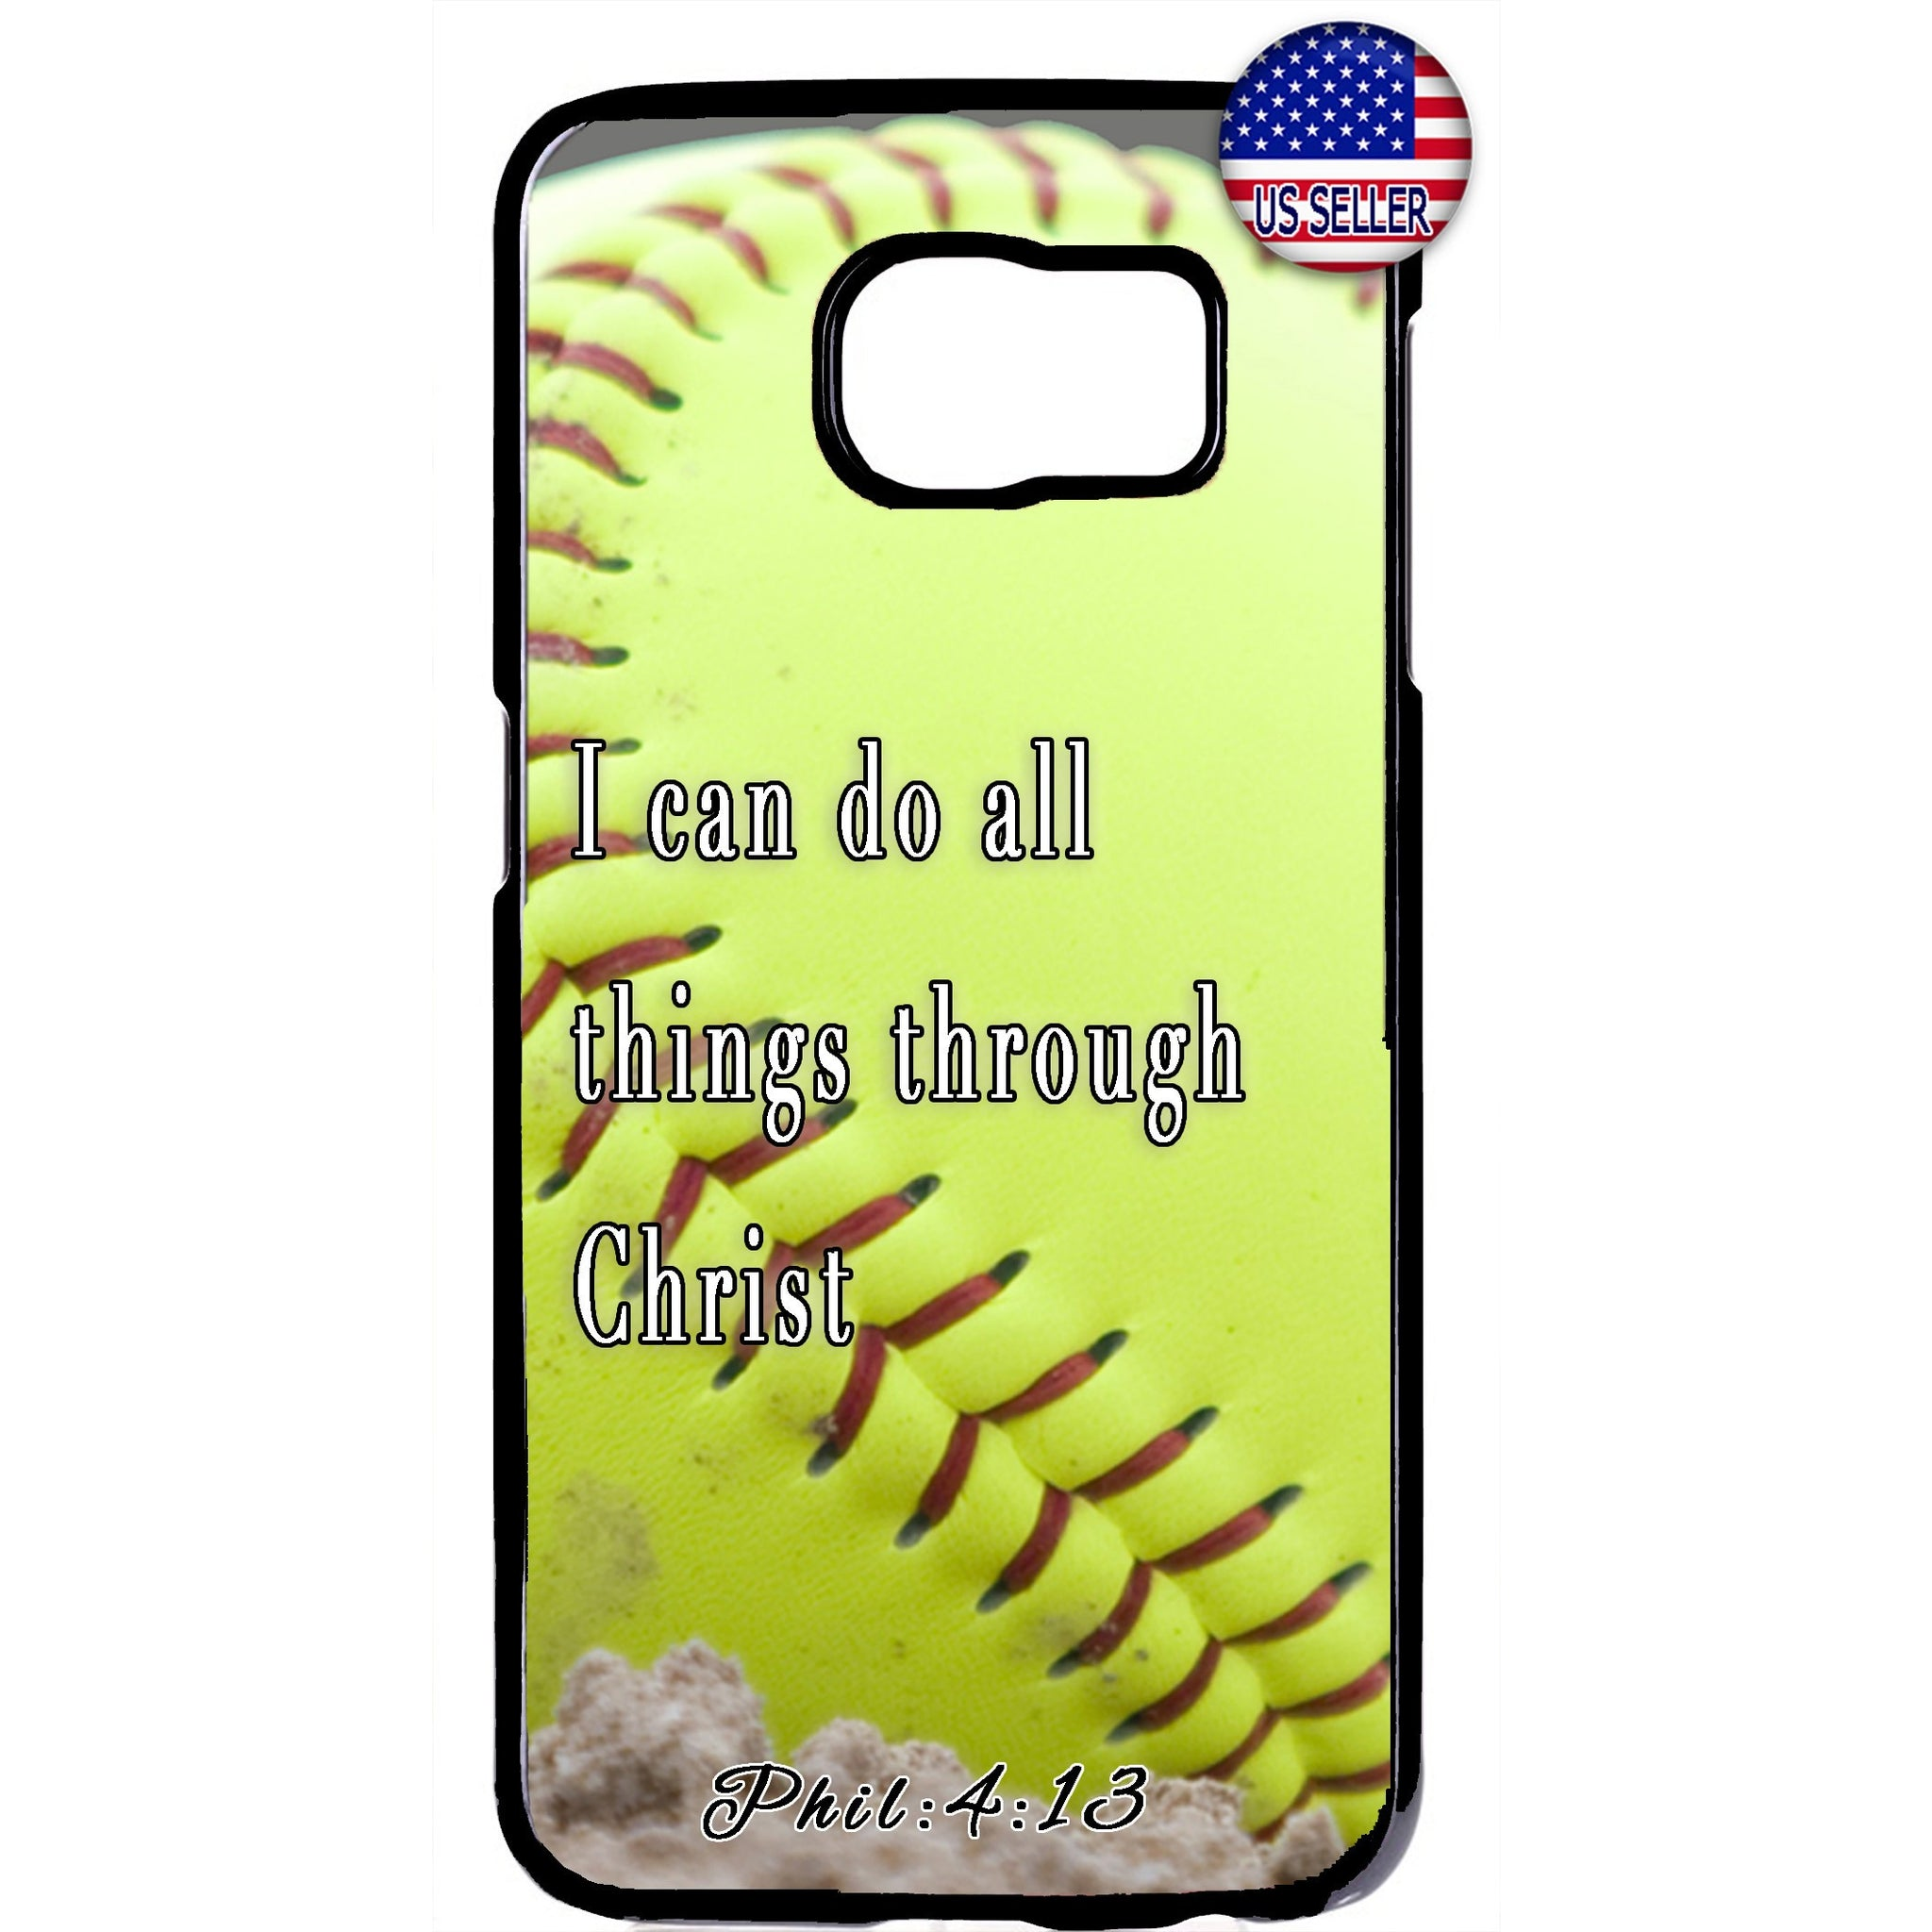 Baseball Christian Bible Verse Jesus Christ Rubber Case Cover For Samsung Galaxy Note